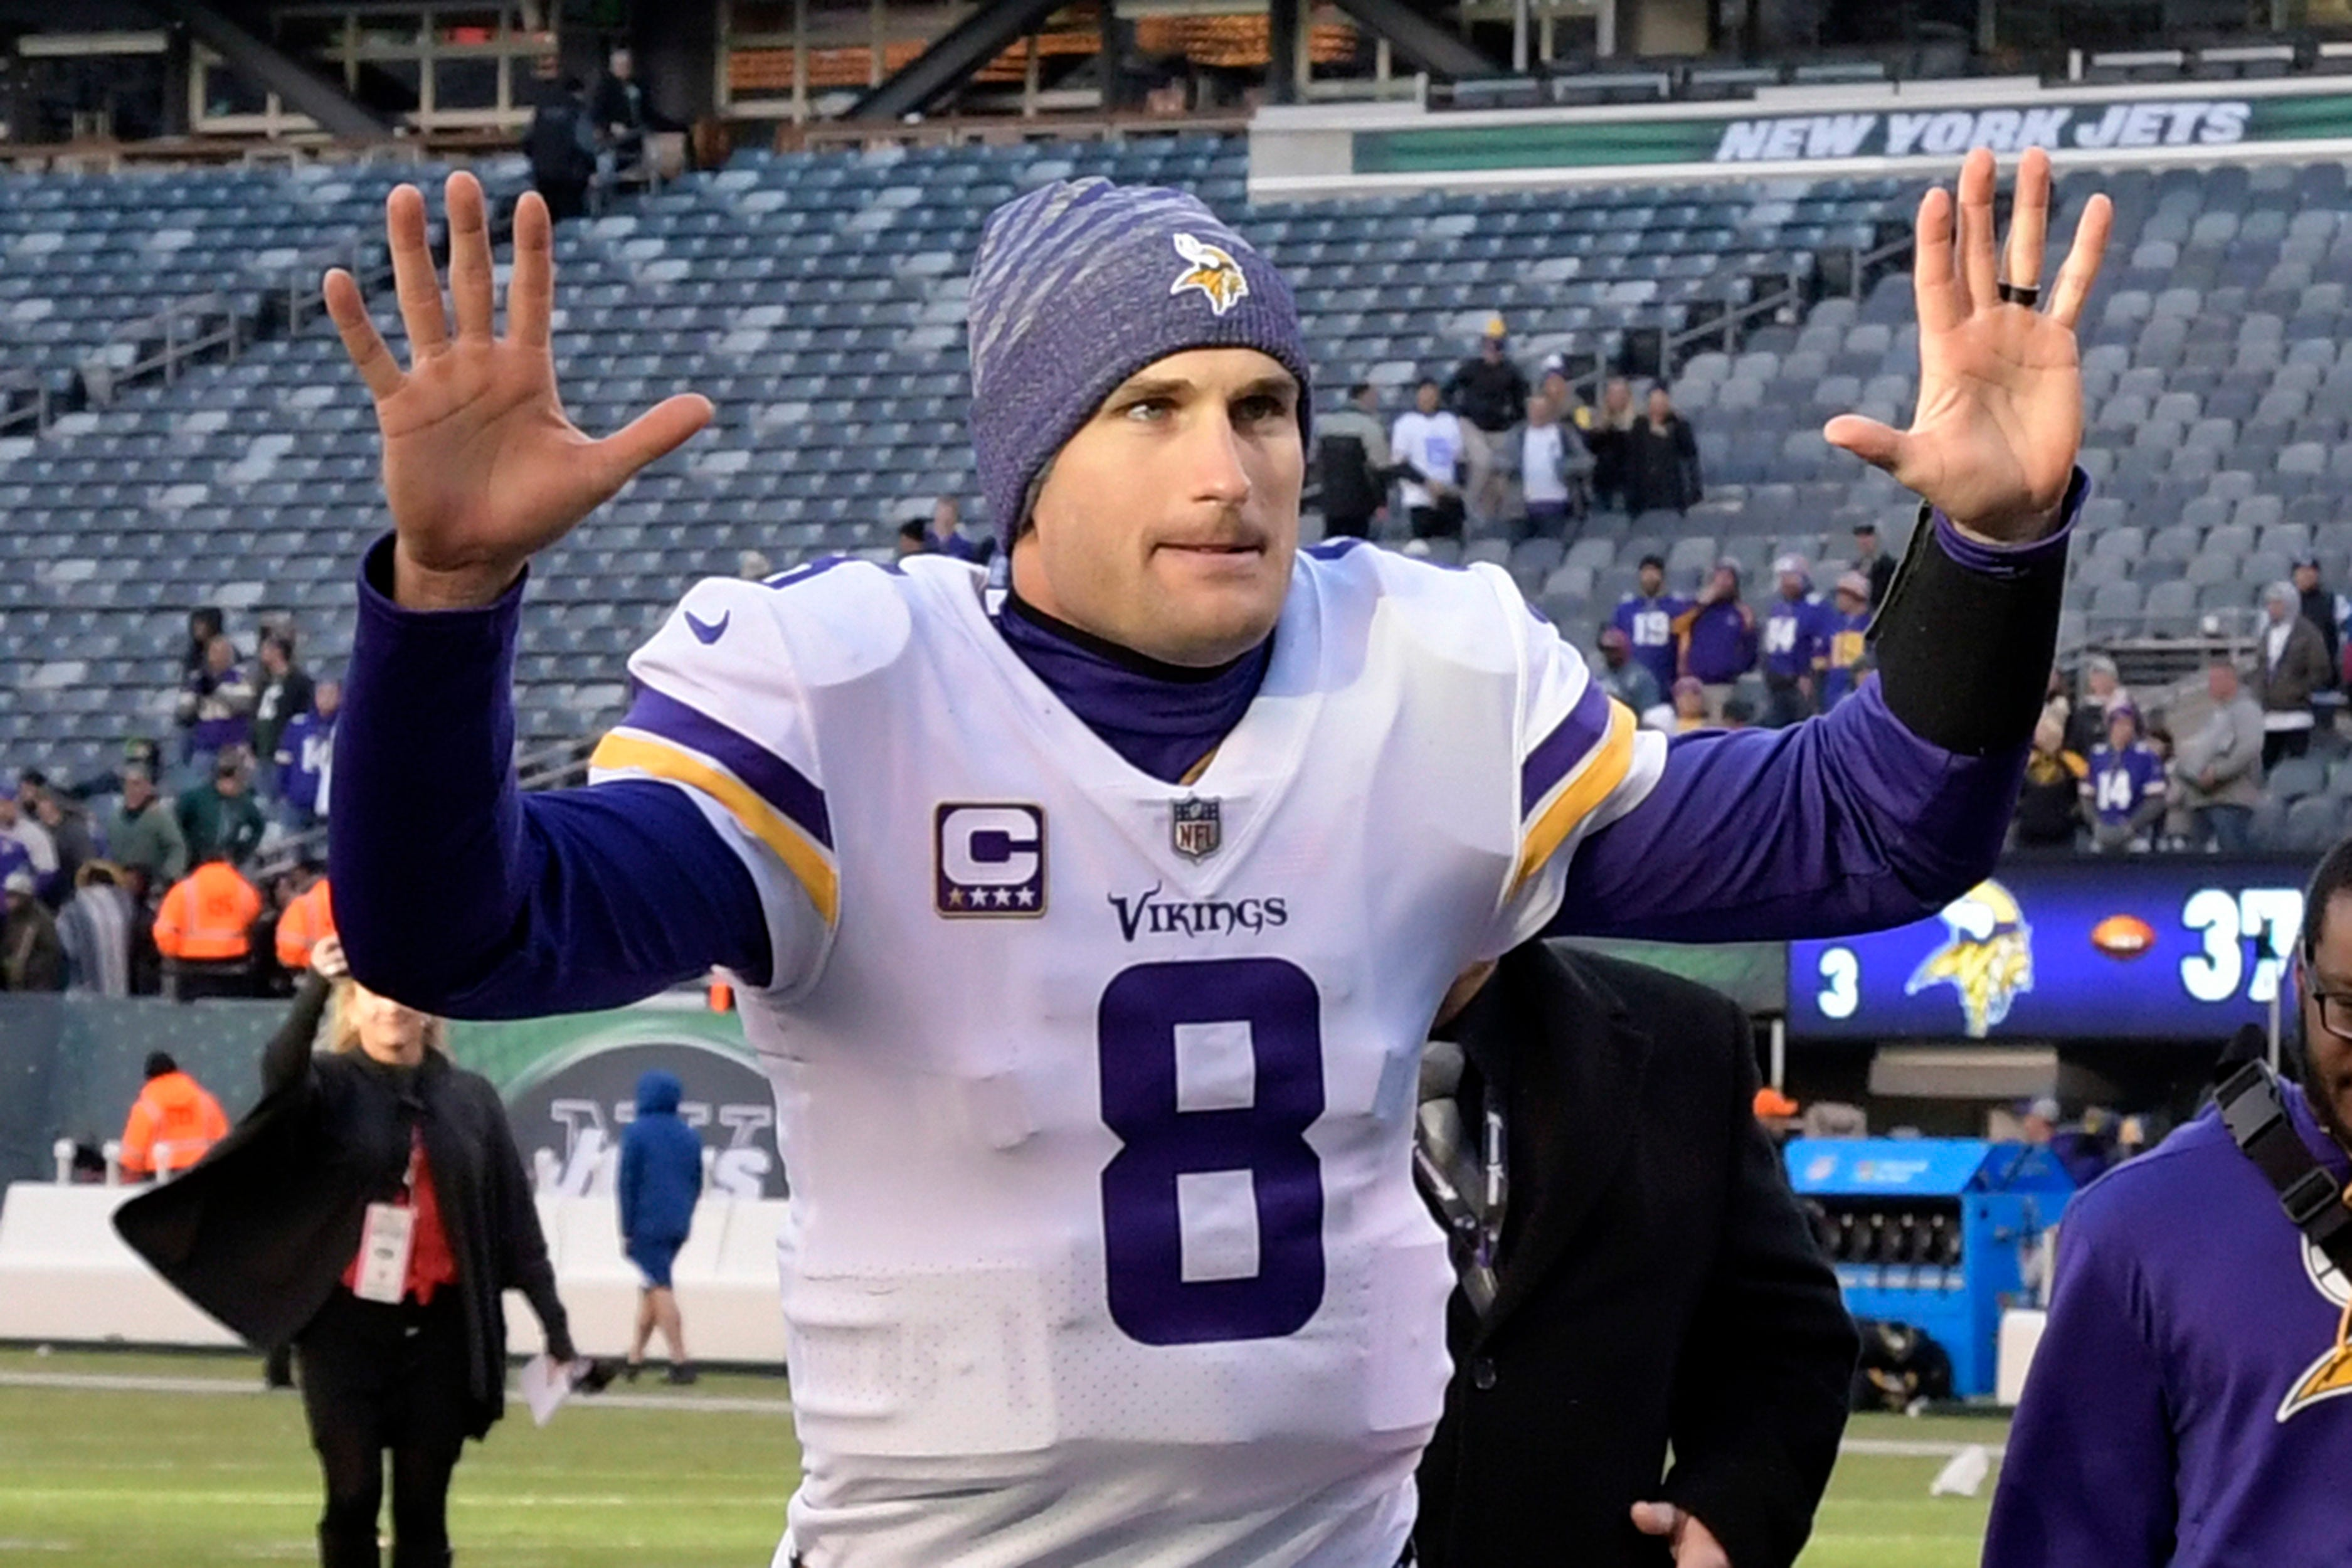 Kirk Cousins had the perfect reply to his own tweet that had angered Vikings fans